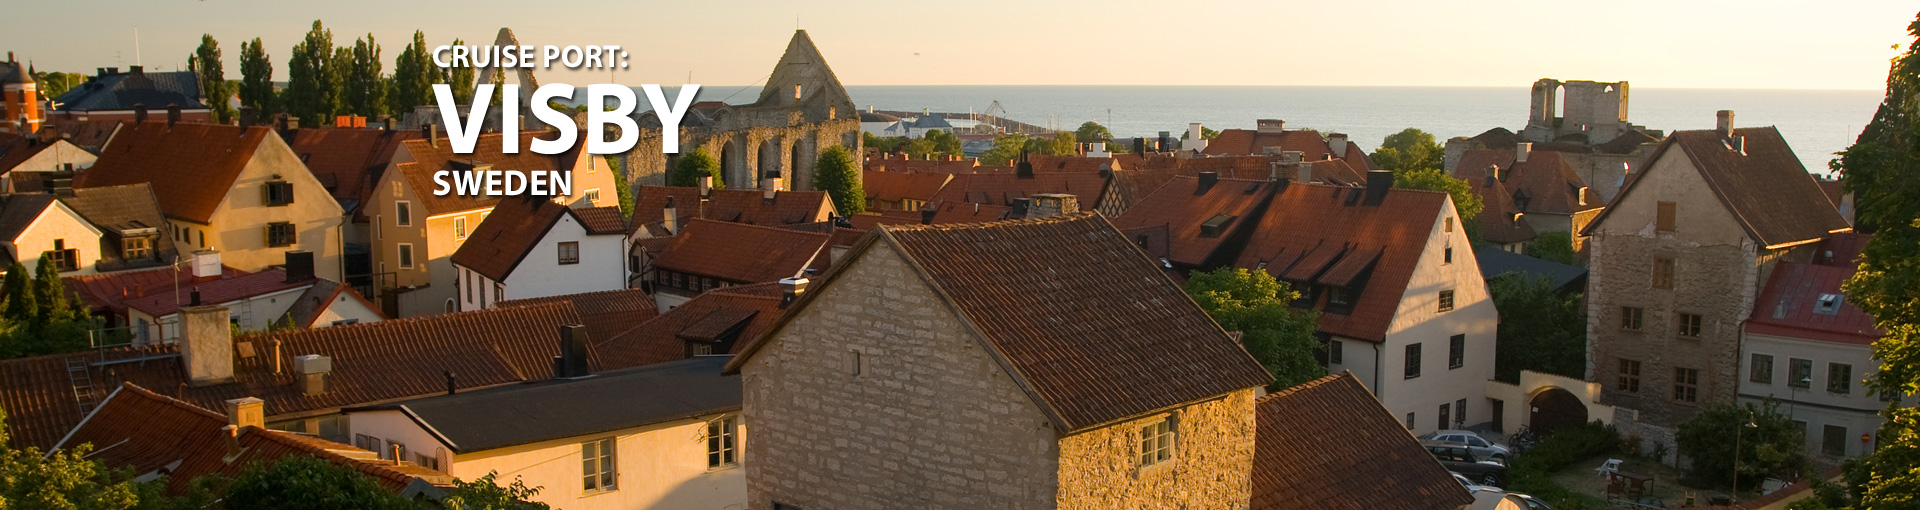 Cruises to Visby, Sweden